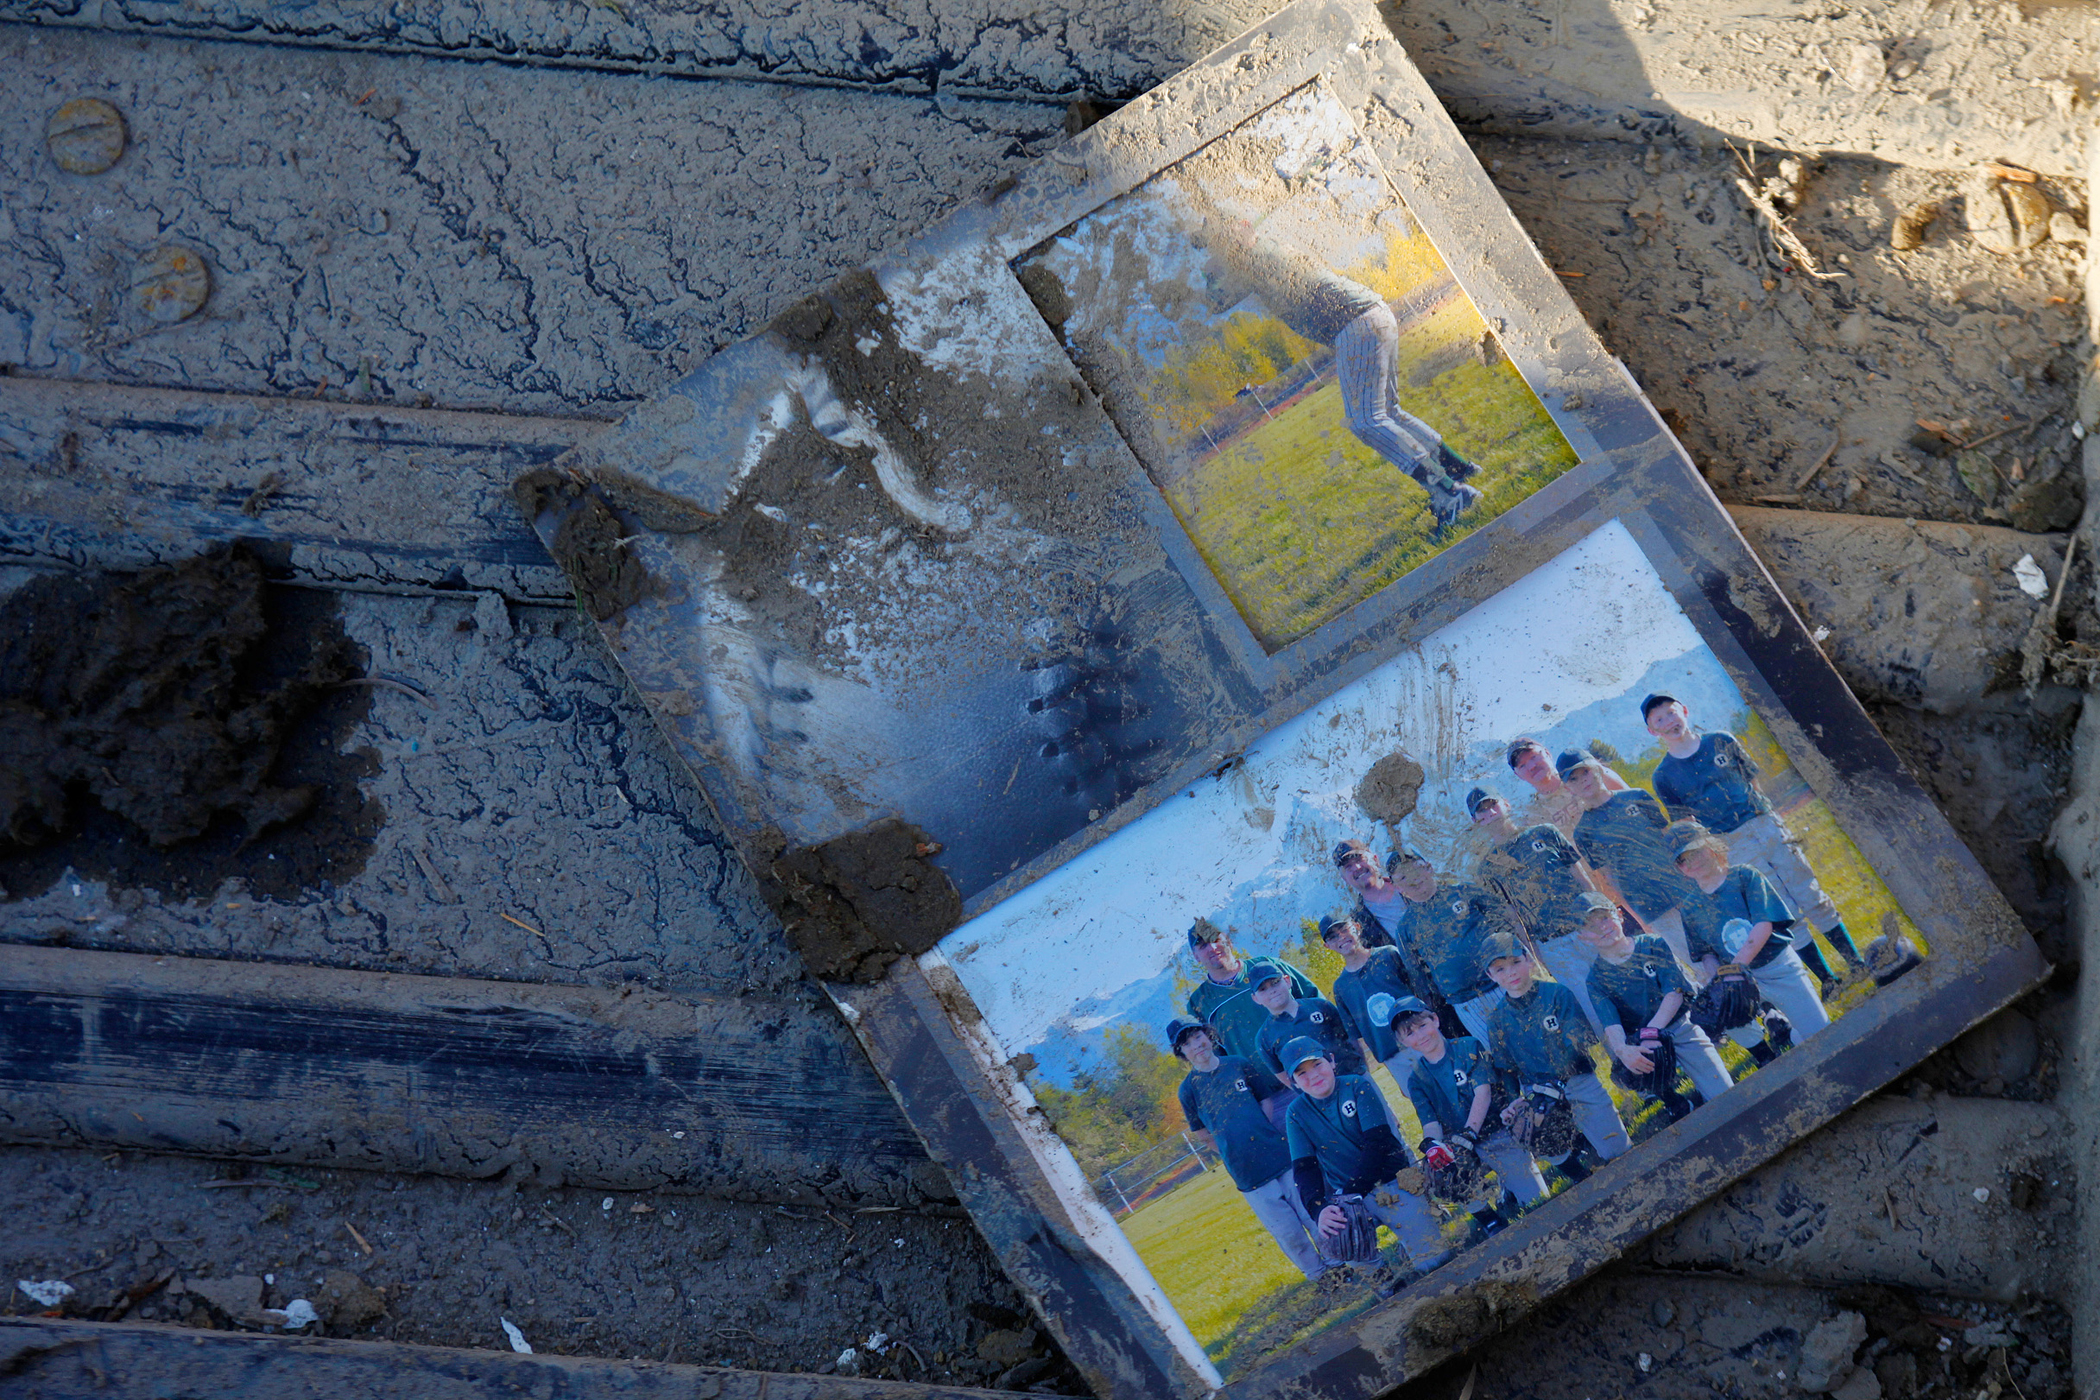 Mud splattered pictures in a home effected by Saturday's fatal mudslide near Oso, Wash., March 23, 2014.